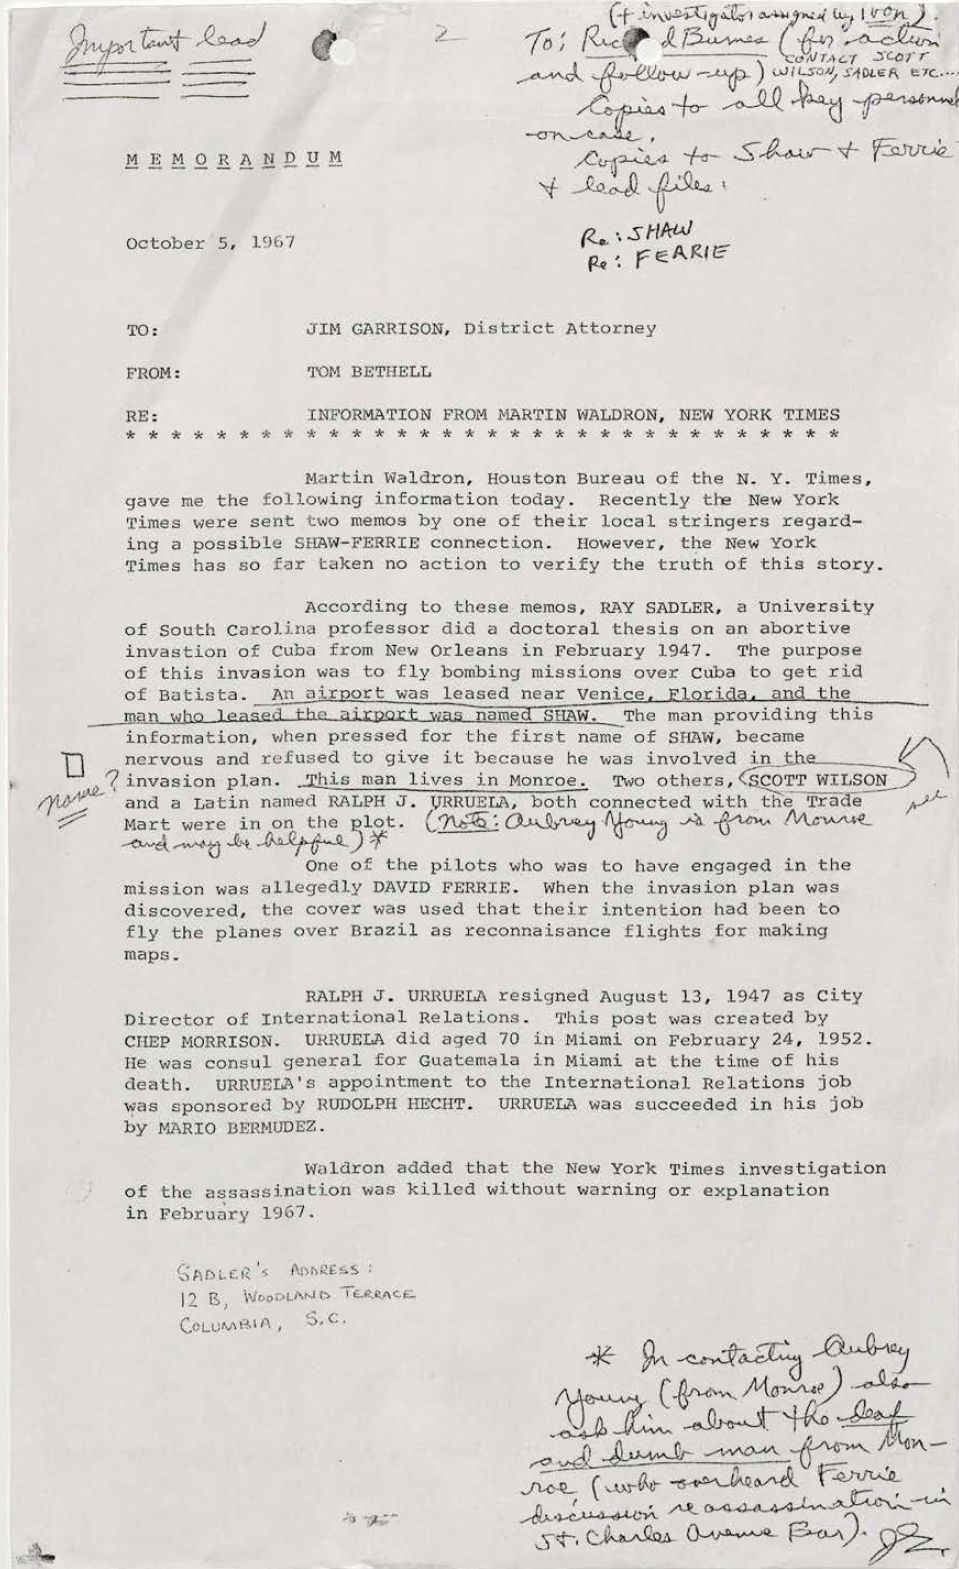 essays on jfk assassination conspiracy The assassination of john f kennedy was an immense contributing factor to several aspects of american life it can be said that his assassination impacted america forever discuss the impact it had culturally, socially, and politically, on the country as a whole, as well as advantages and disadvantages of these effects.